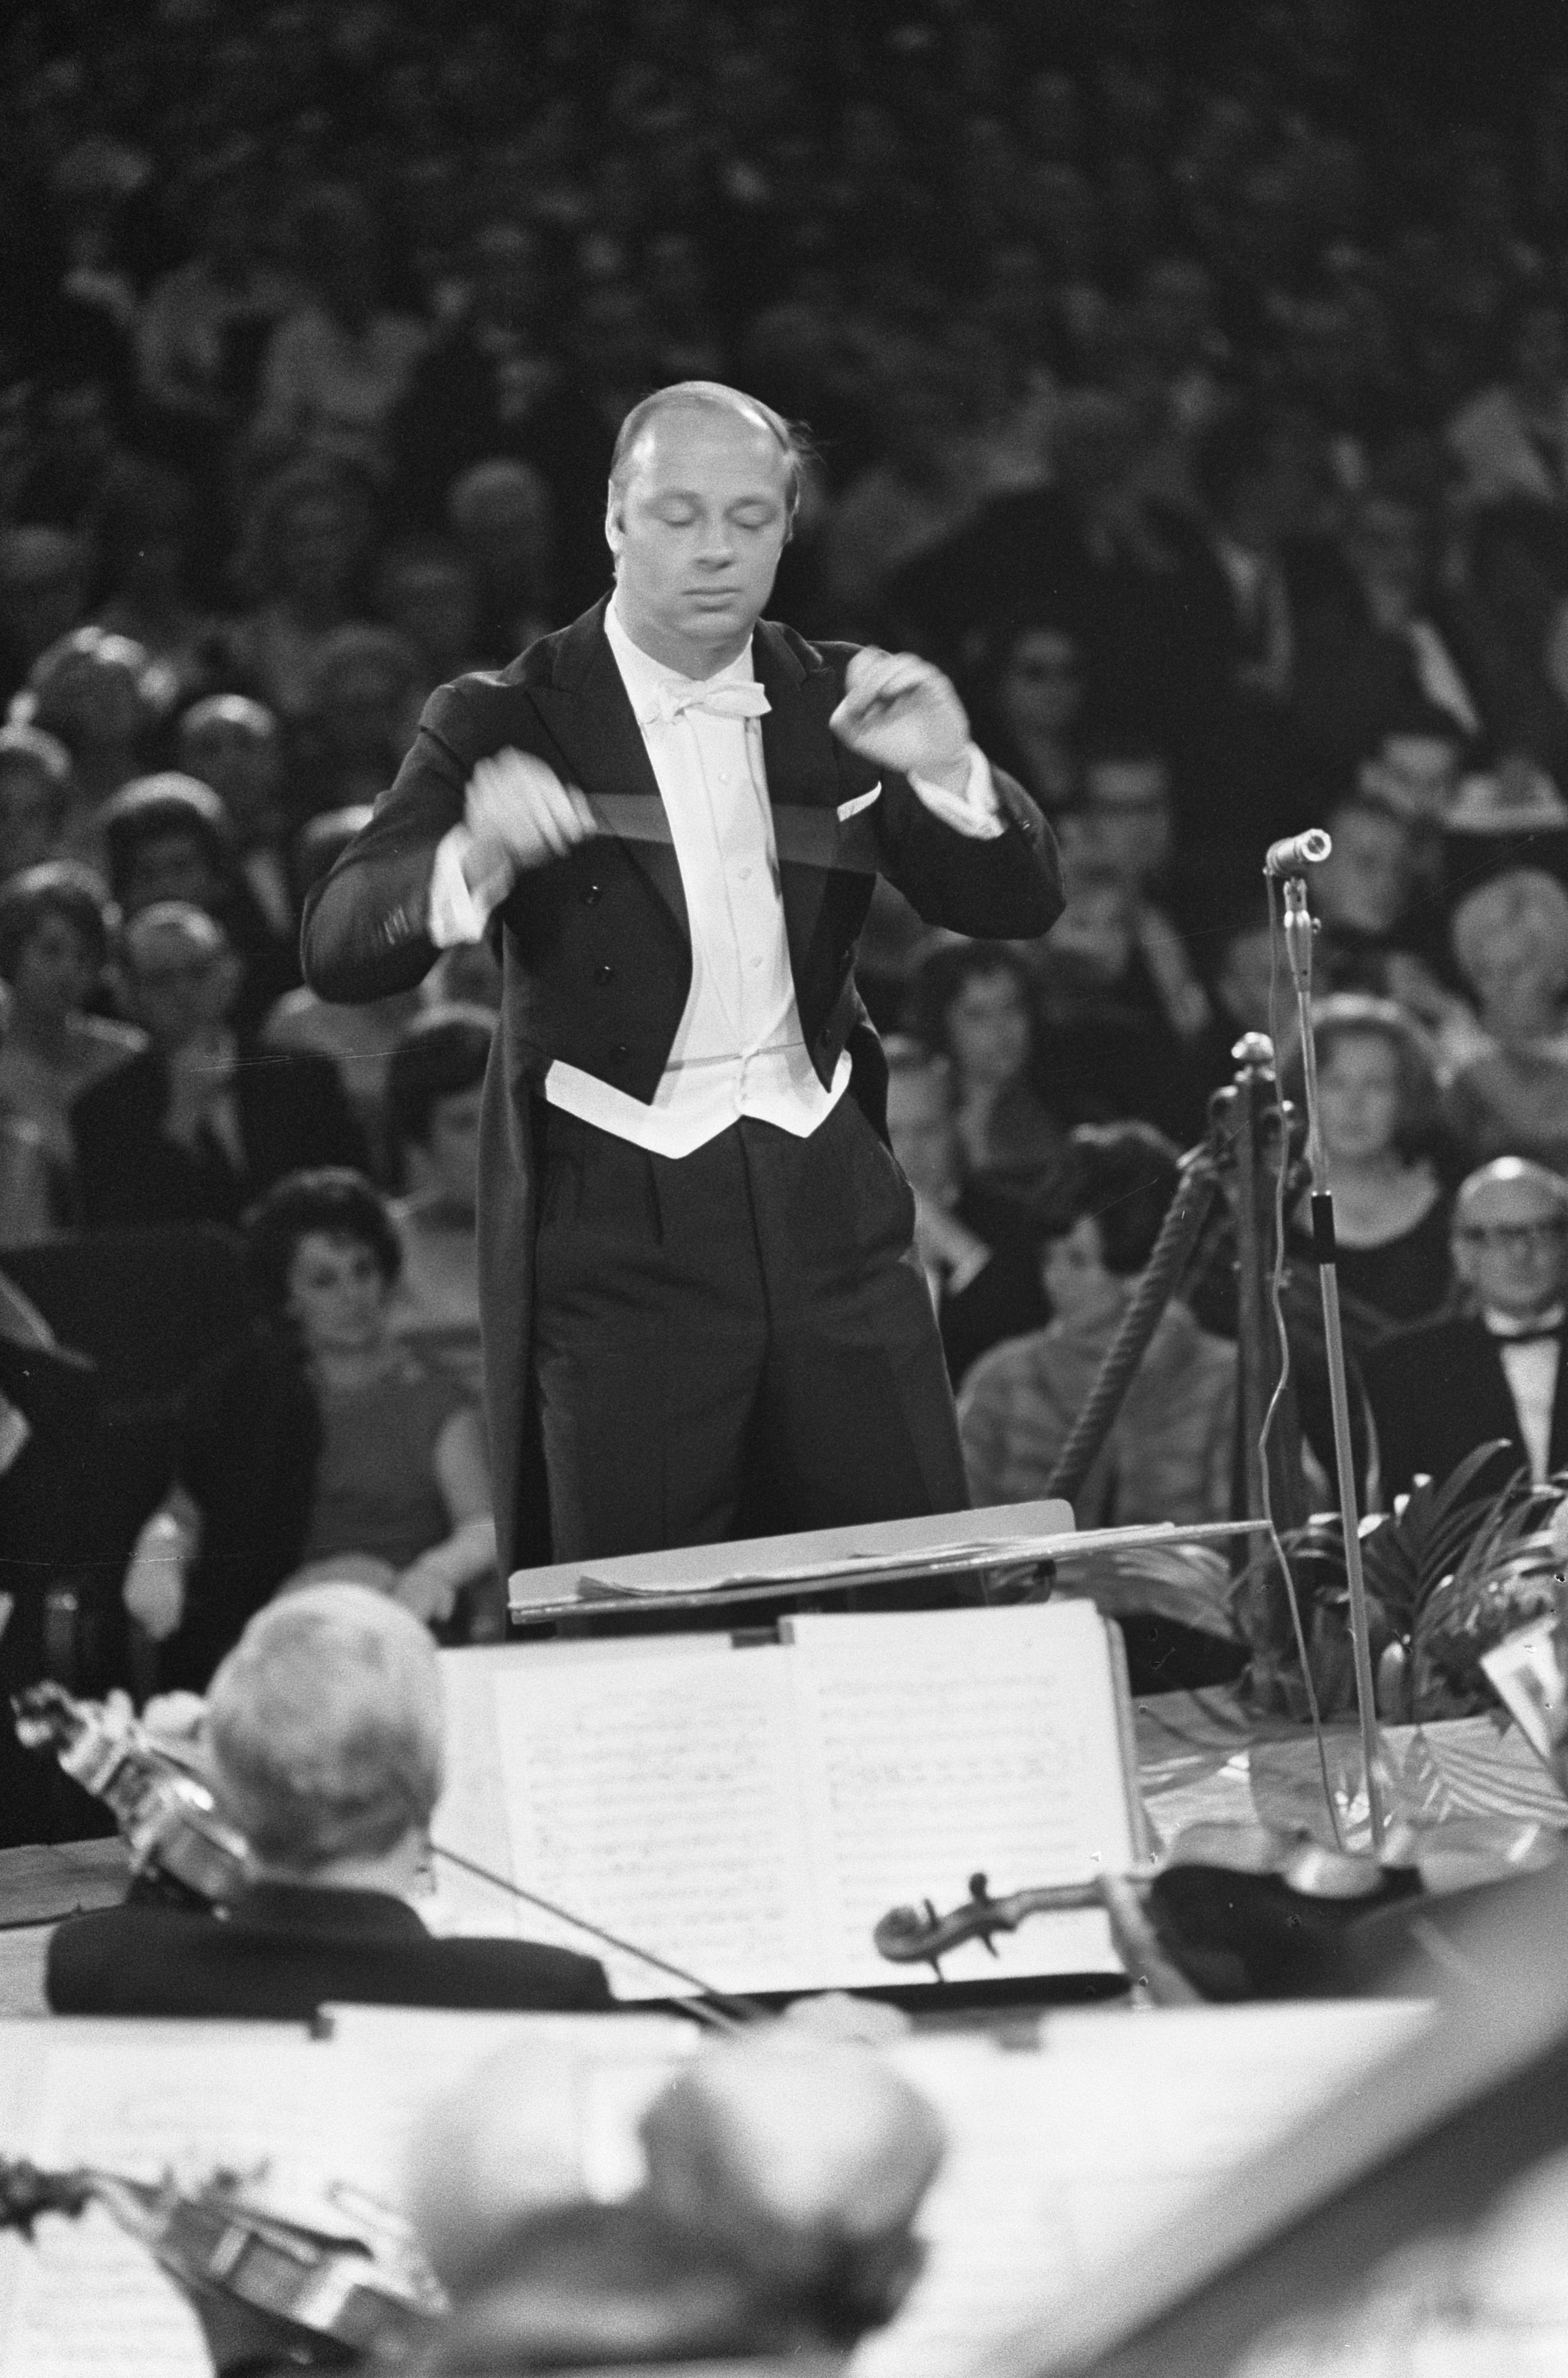 28 octobre 1966, Bernard HAITINK dirige le Amsterdamse Concertgebouw, Grand Gala du Disque 1966, Amsterdamse Concertgebouw, Collection / Archive Fotocollectie Anefo, Photographer Fotograaf Onbekend / Anefo, Copyright Holder Nationaal Archief, CC0, Catalog reference number 2.24.01.05, Inventory File Number 919-7329, cliquer pour plus d'infos